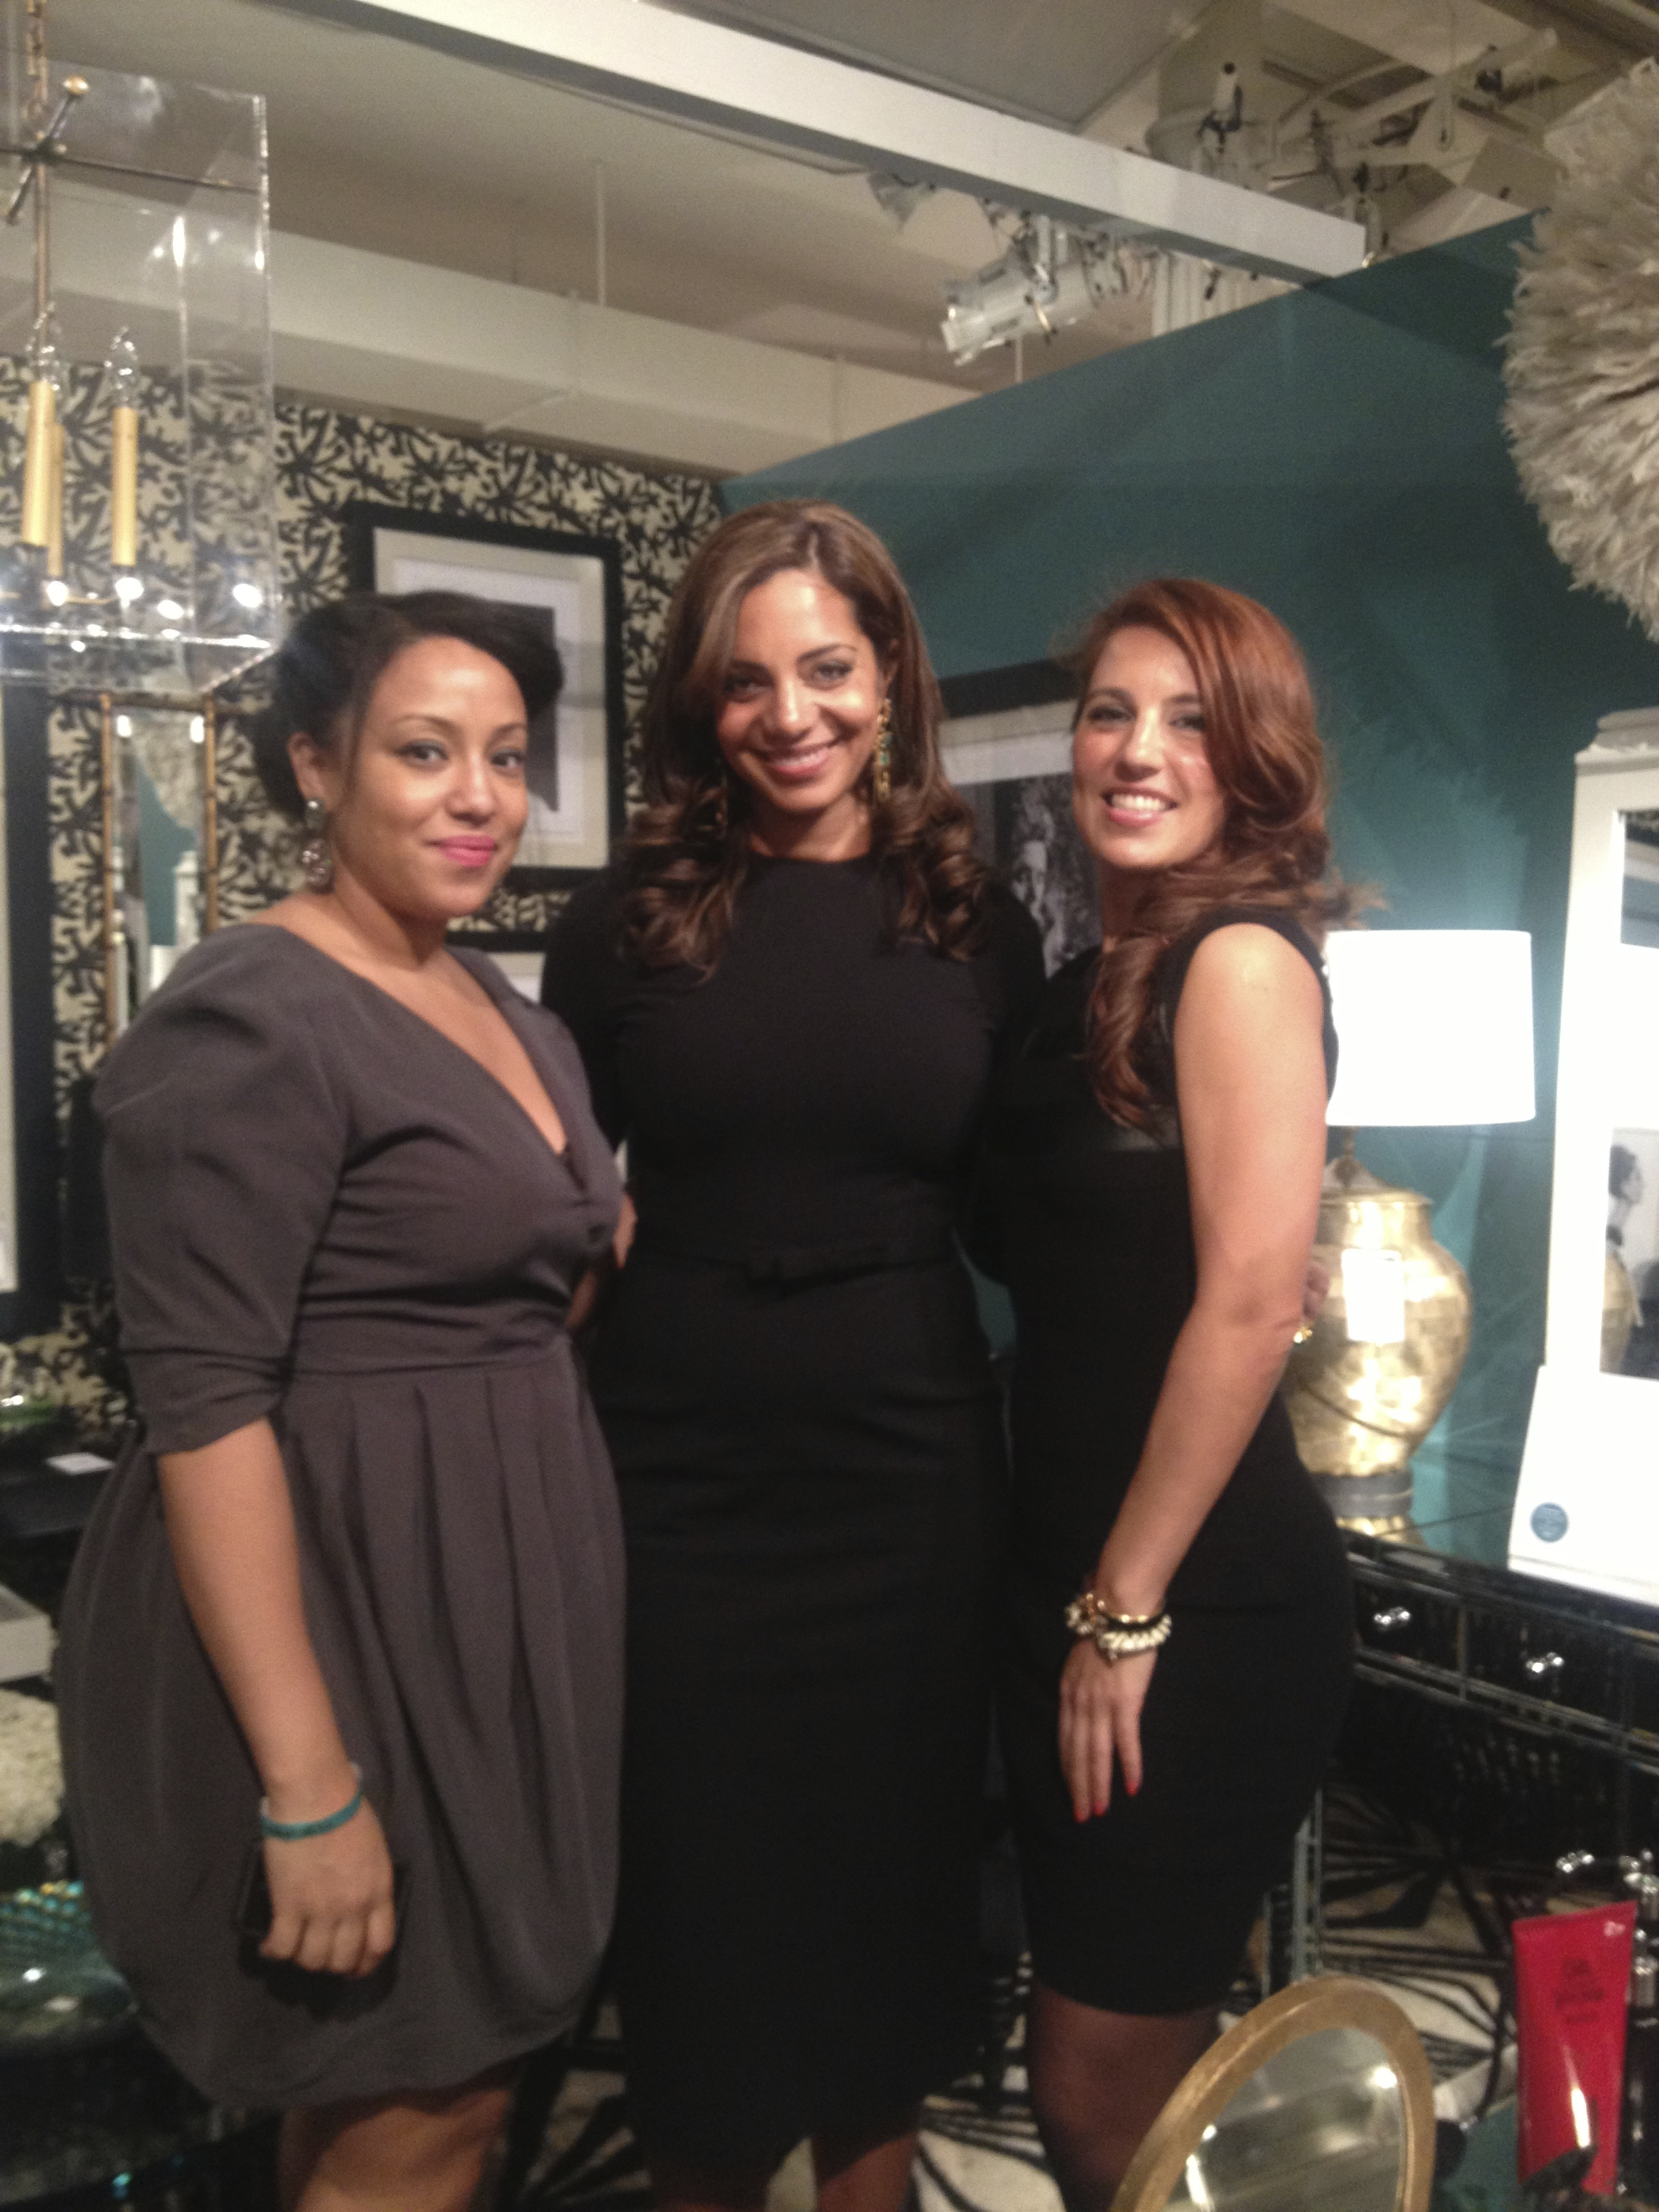 My dream team… Ari and Sarah. They made it all happen and still looked cute for the opening party.